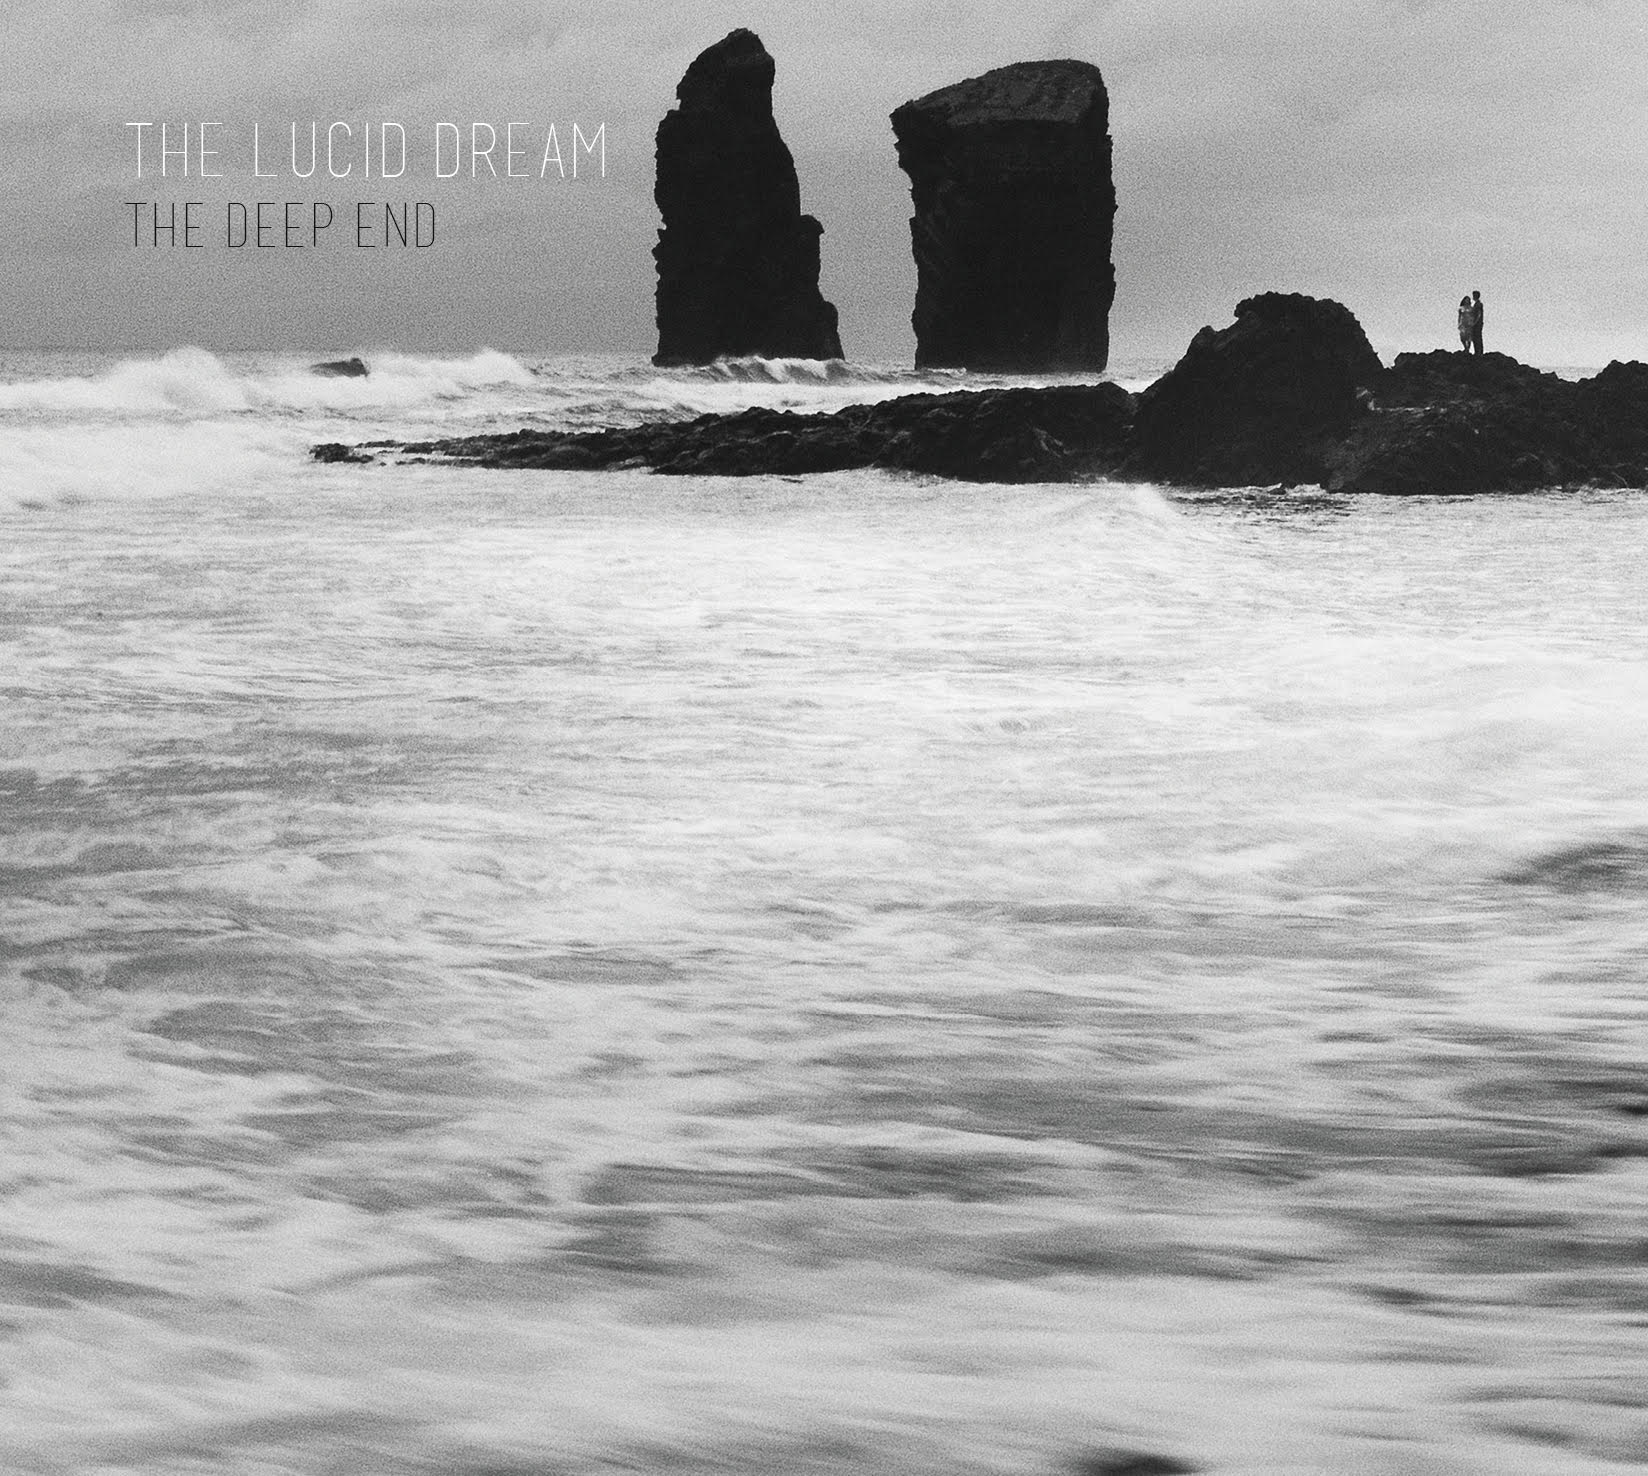 ALBUM REVIEW: The Lucid Dream - The Deep End